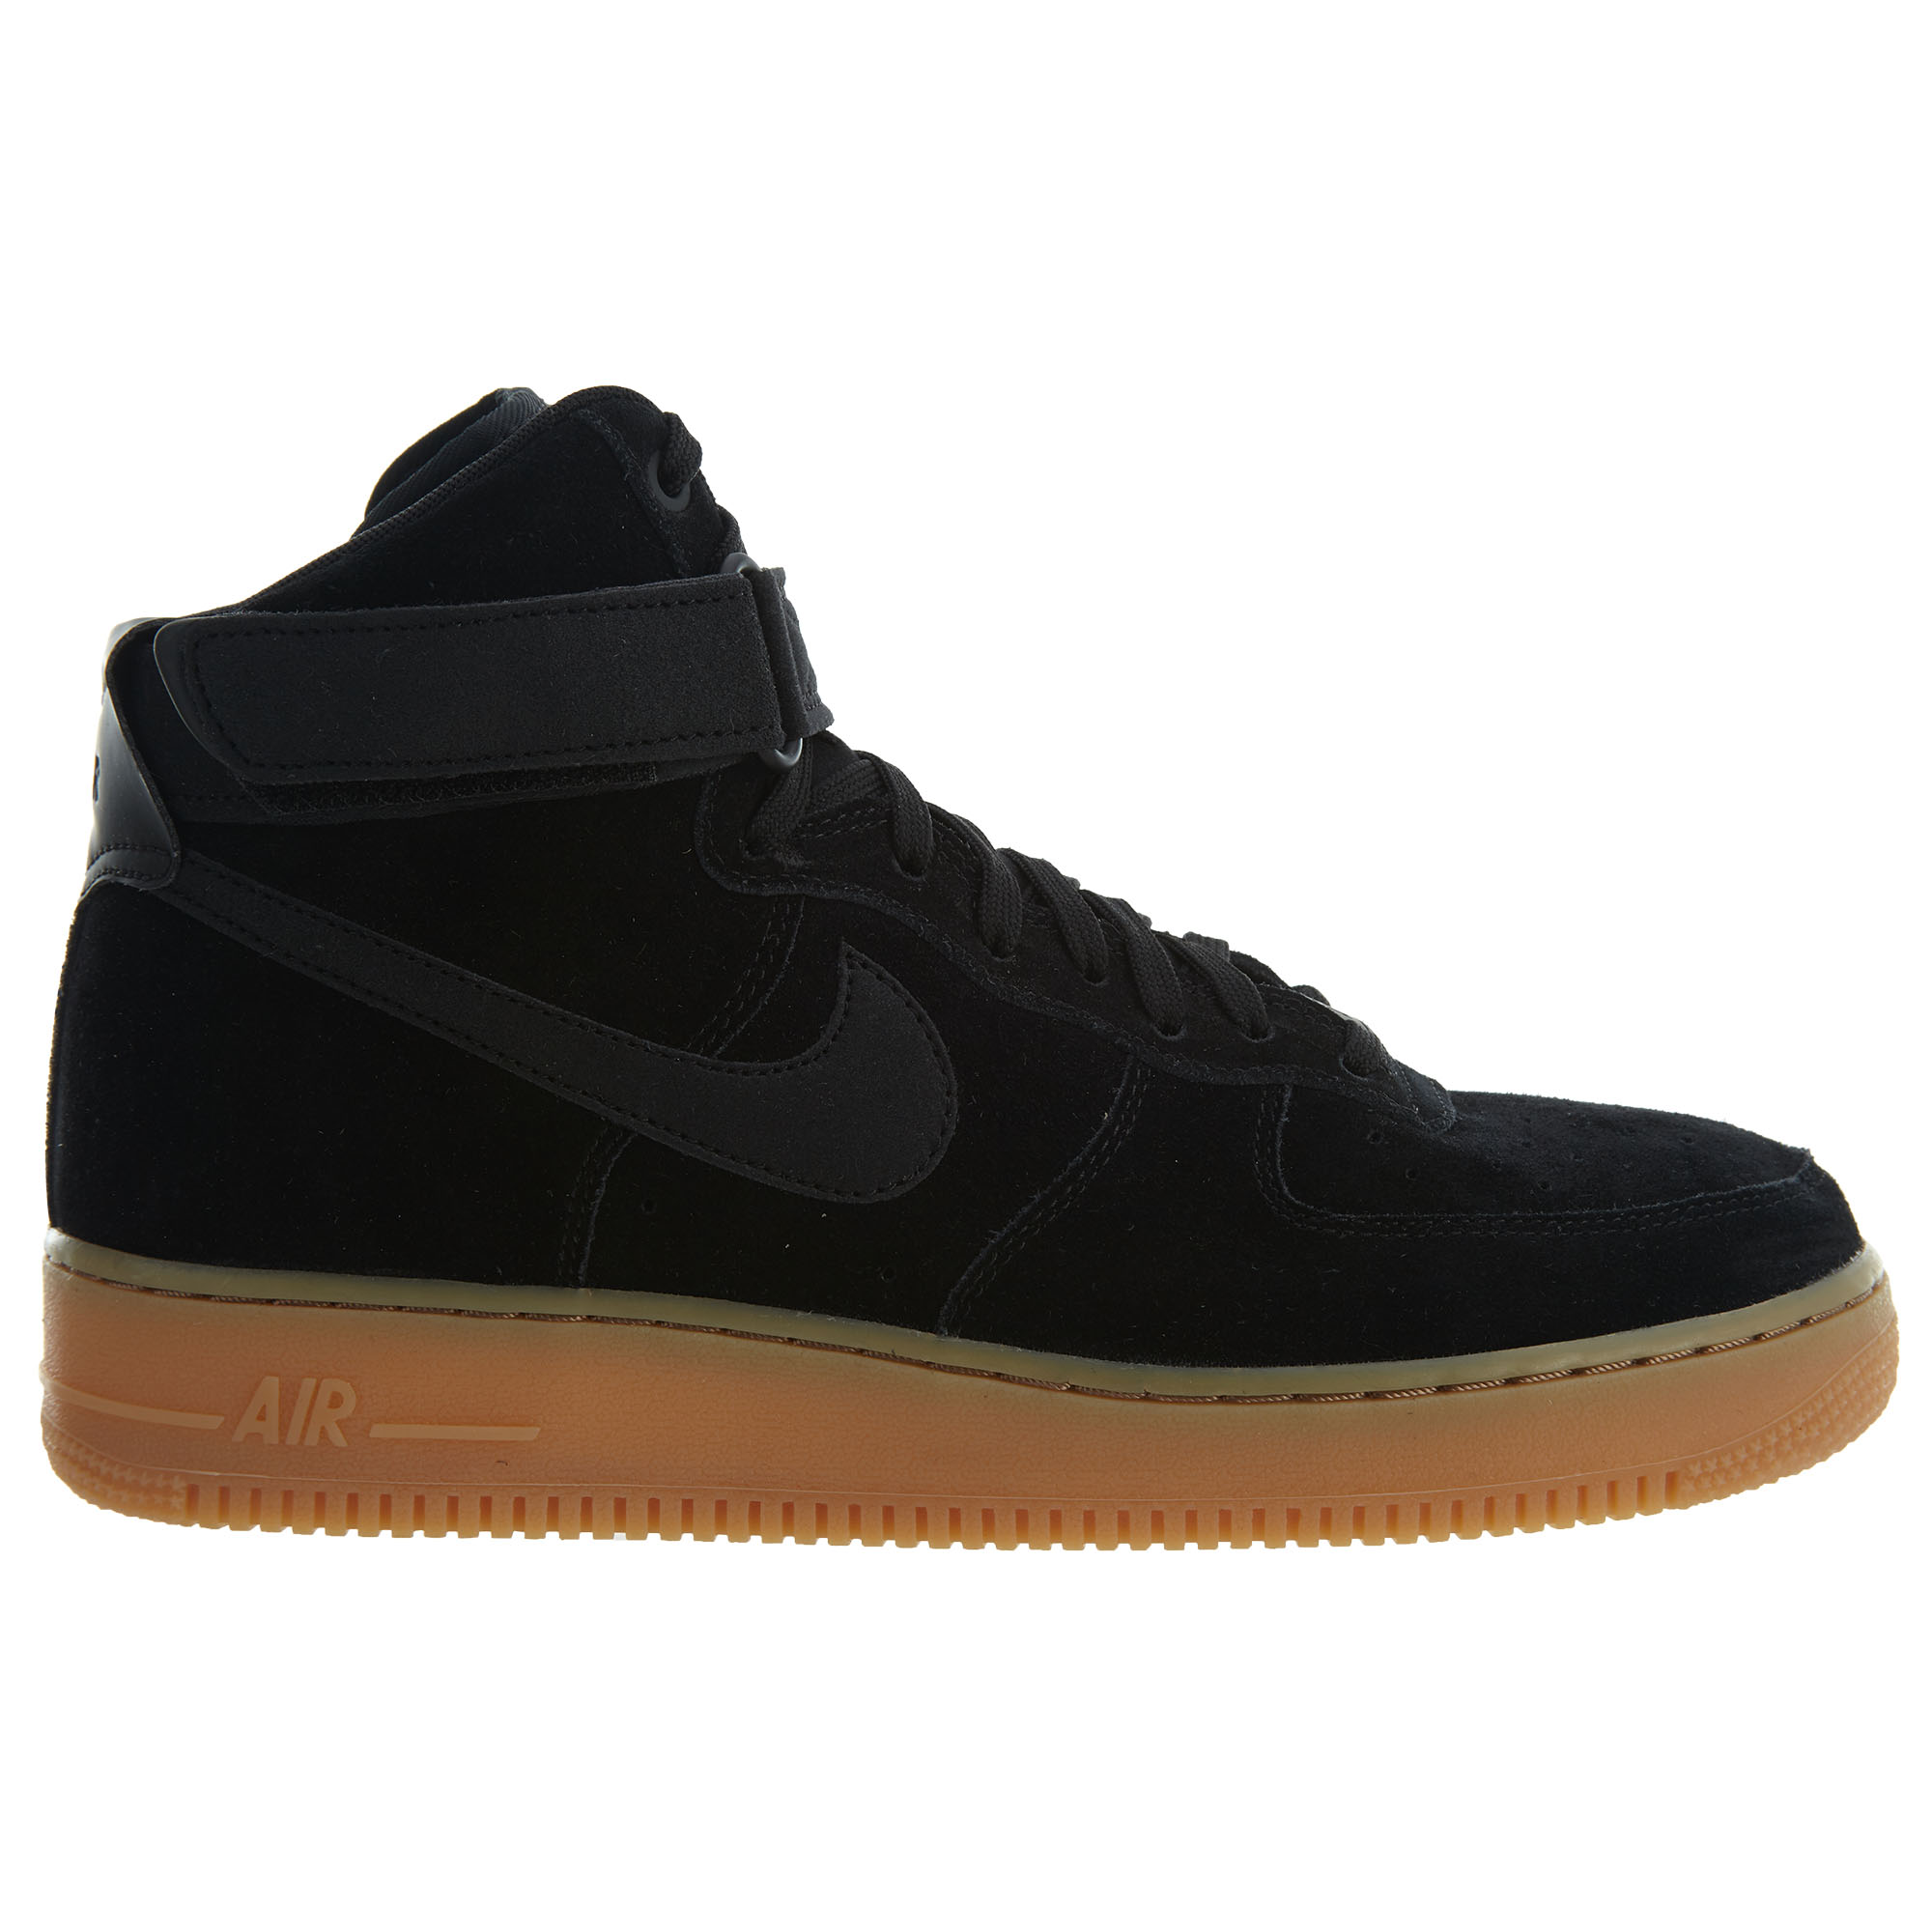 Nike Air Force 1 High 07 Lv8 Suede BlackBlack Gum Med Brown